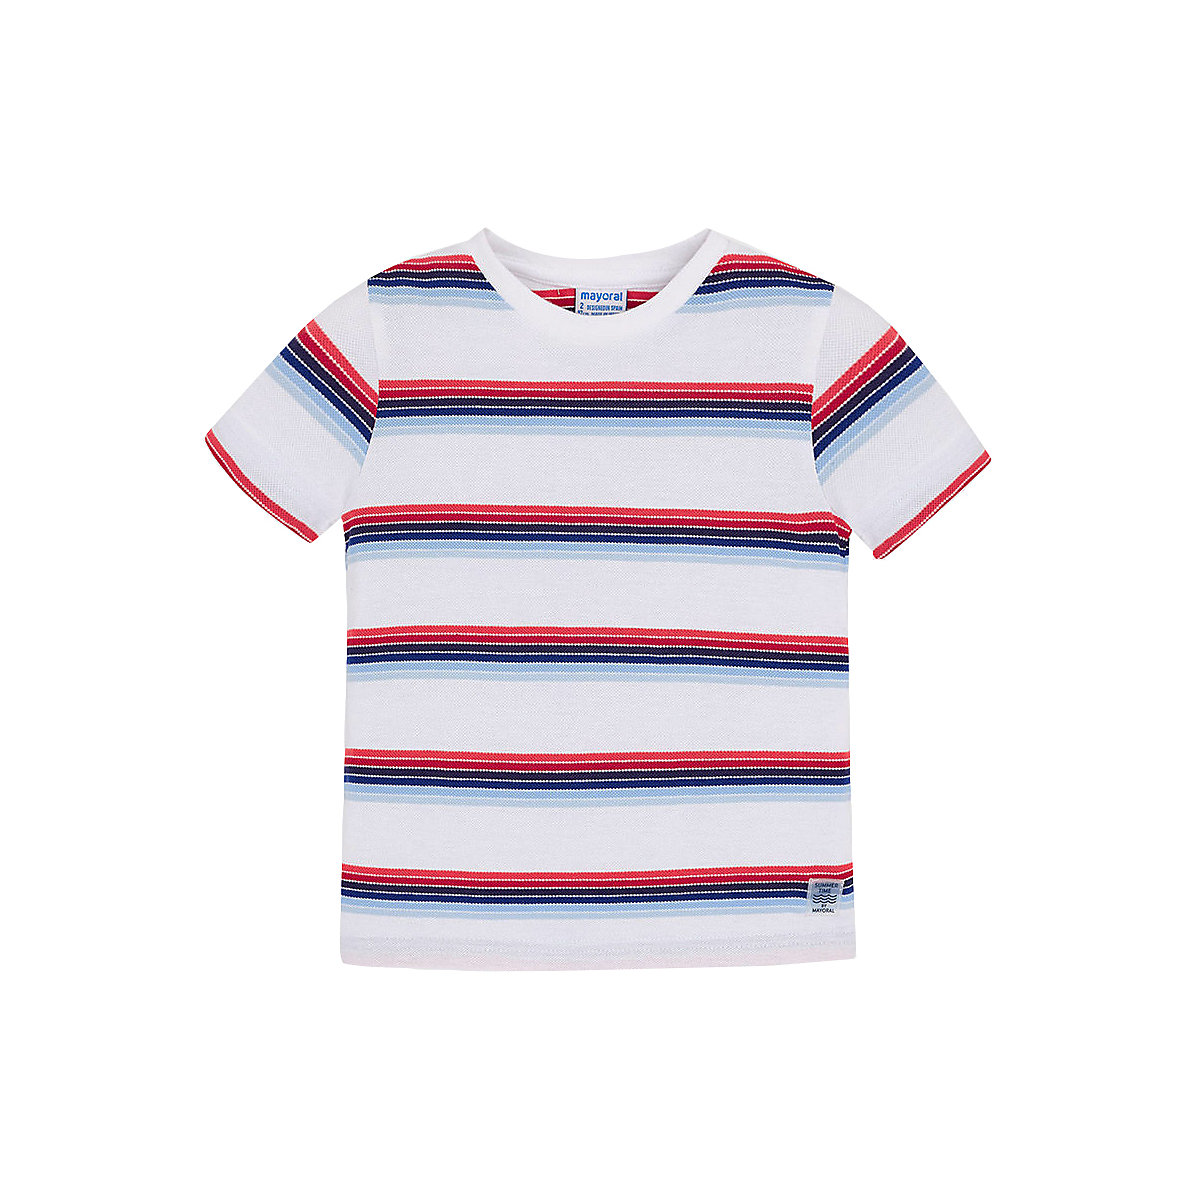 T-Shirts MAYORAL 10681831 Children sClothing T-shirt with short sleeves polo shirt for boys and girls